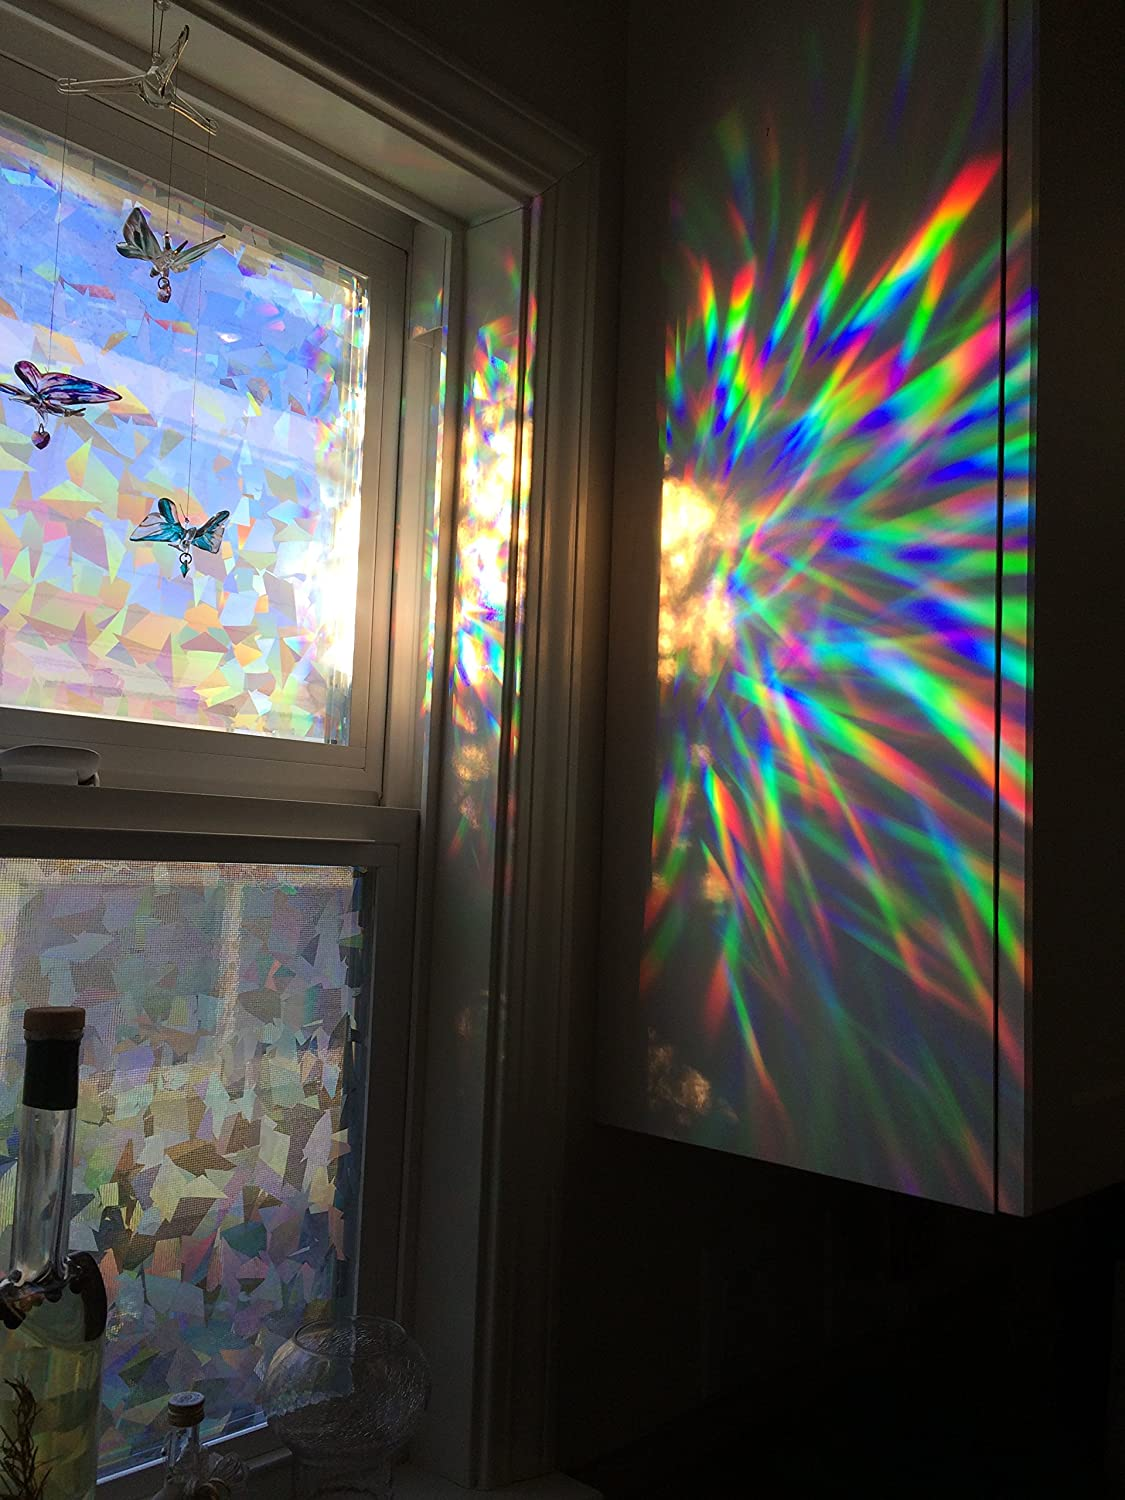 amazoncom decorative window film holographic prismatic etched glass effect fill your house with rainbow light 23 x 36 panels home kitchen - Decorative Window Film